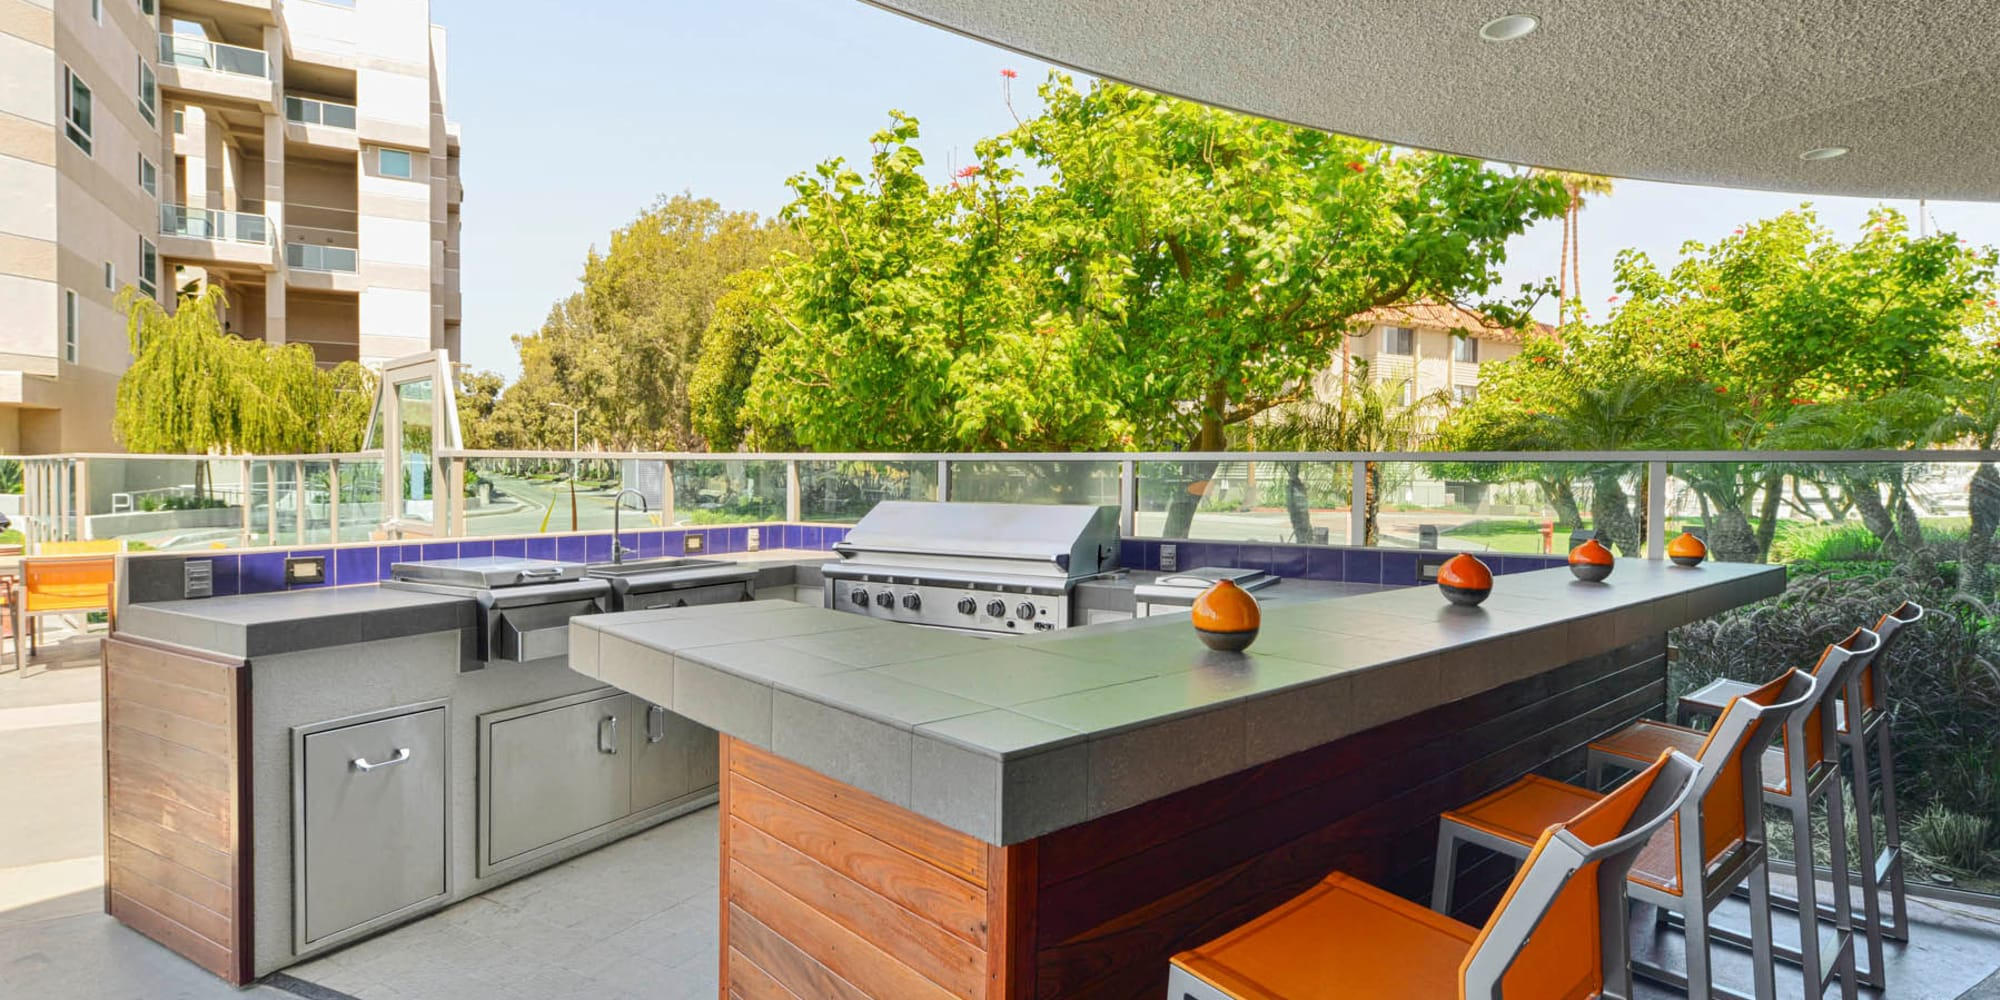 Outdoor kitchen with gas barbecue grills and bar seating at Esprit Marina del Rey in Marina Del Rey, California